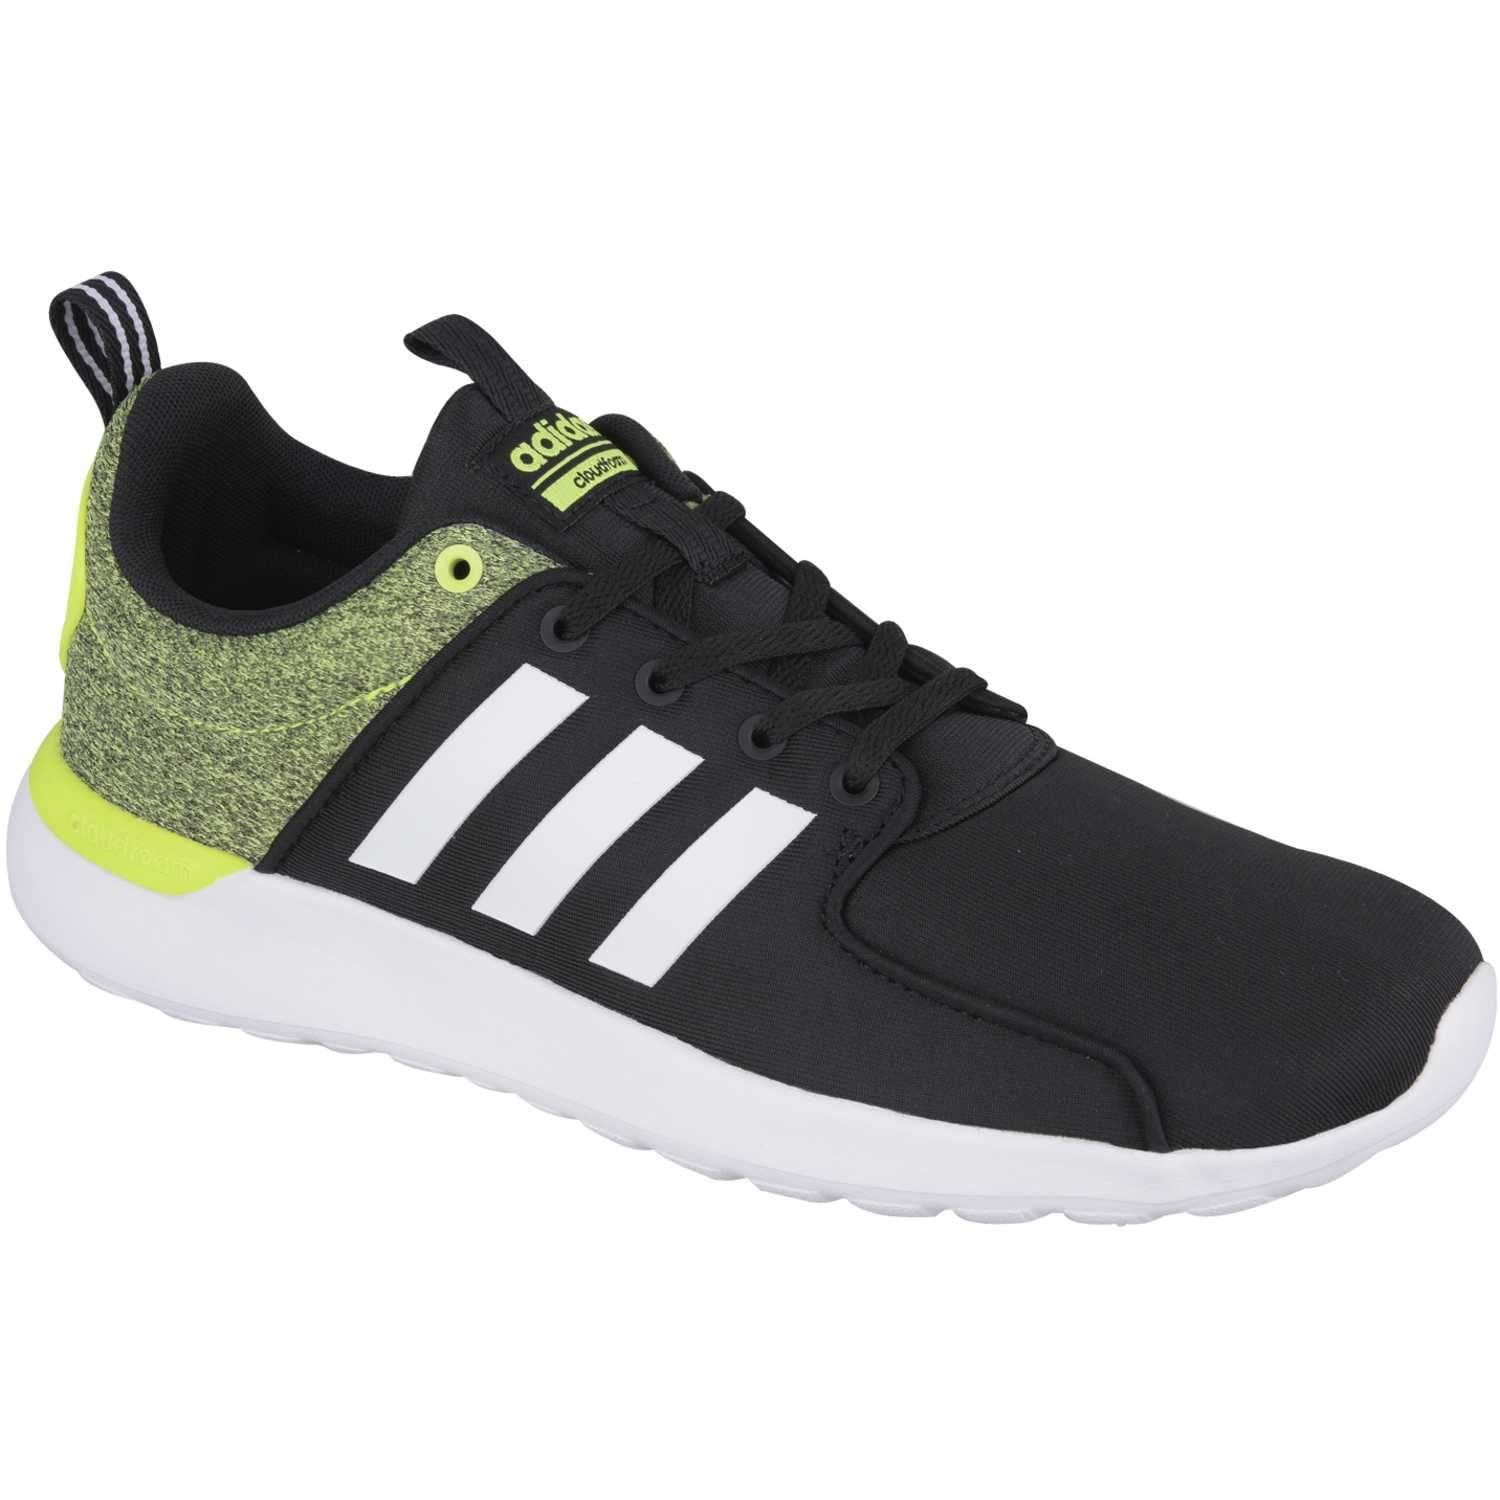 timeless design 06aee c8239 Details about Adidas Mens Cloudfoam Lite Racer - Size 11 Black  Solar  Yellow Running Shoes